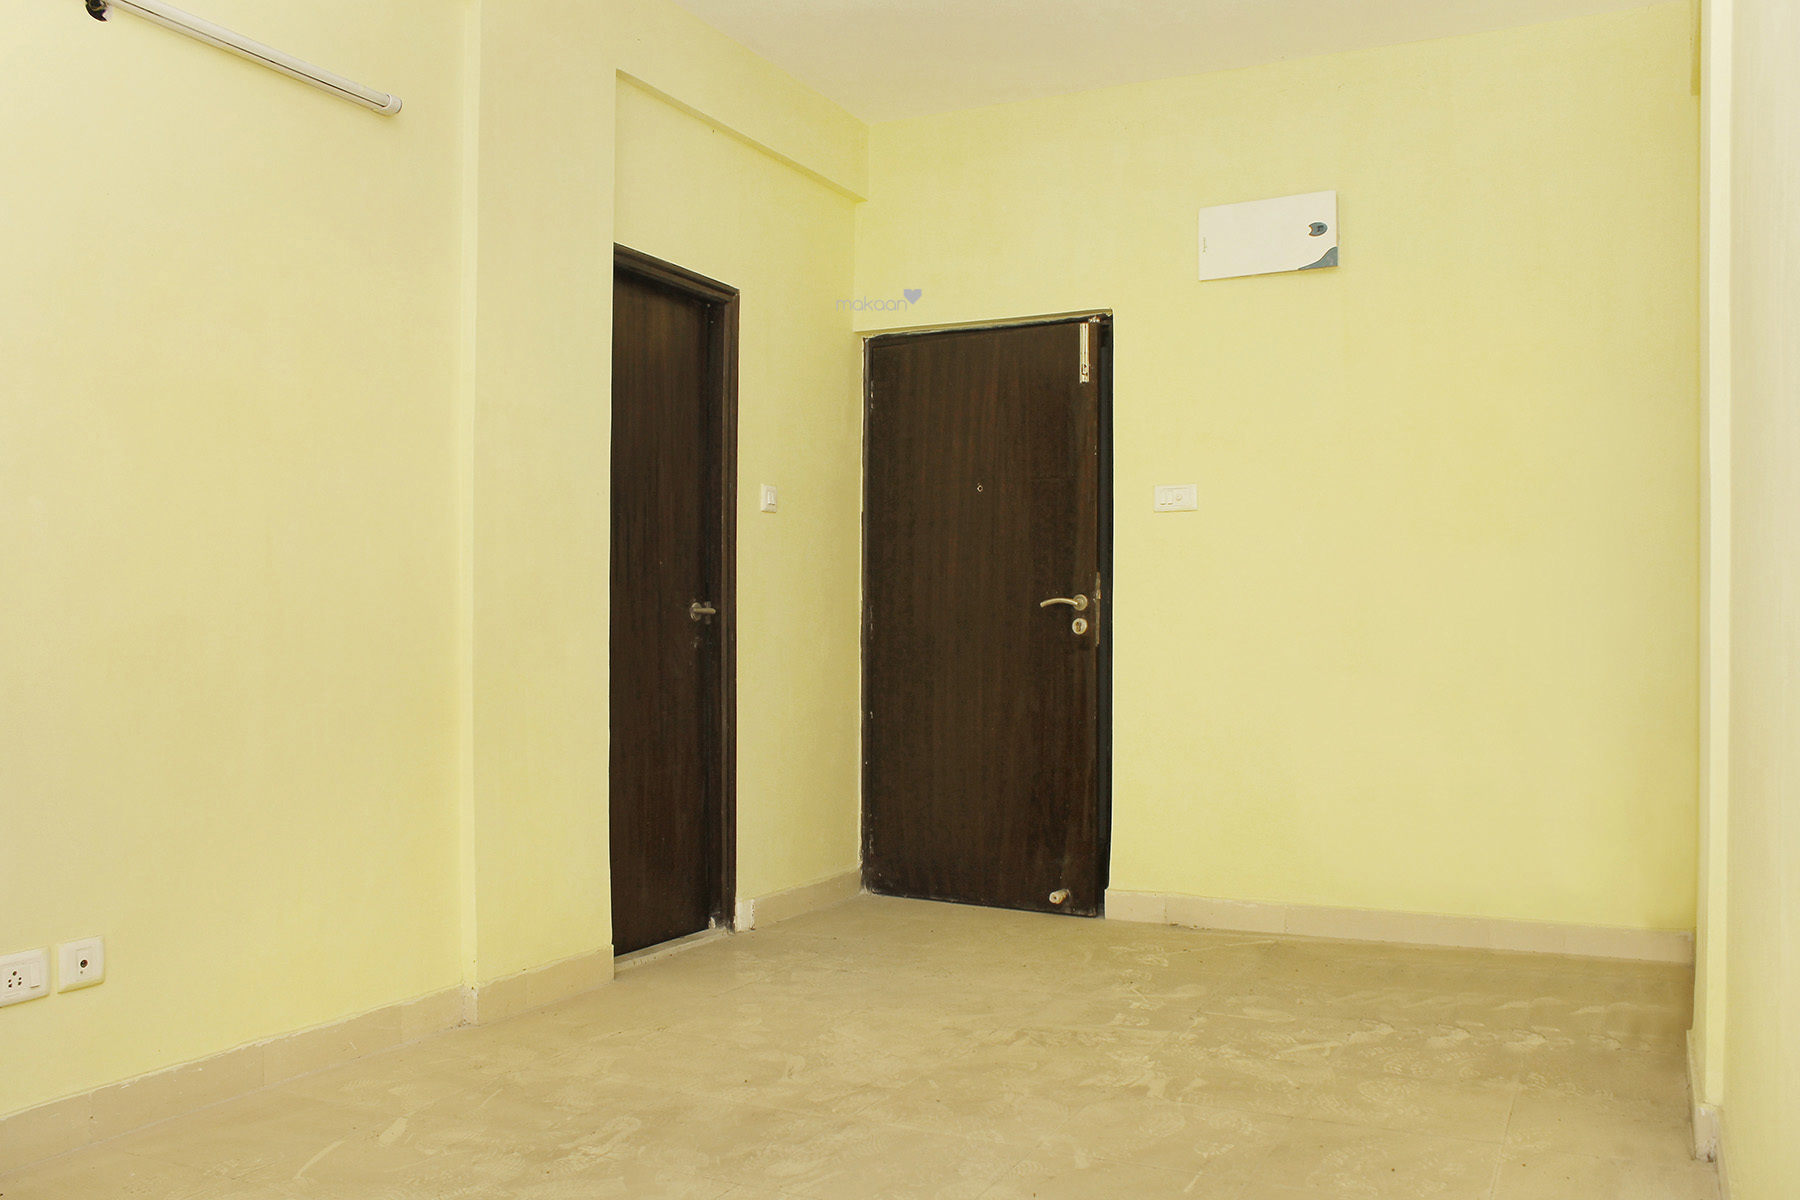 1358 sq ft 3BHK 3BHK+3T (1,358 sq ft) Property By Proptiger In Greenfield City Elite, Behala